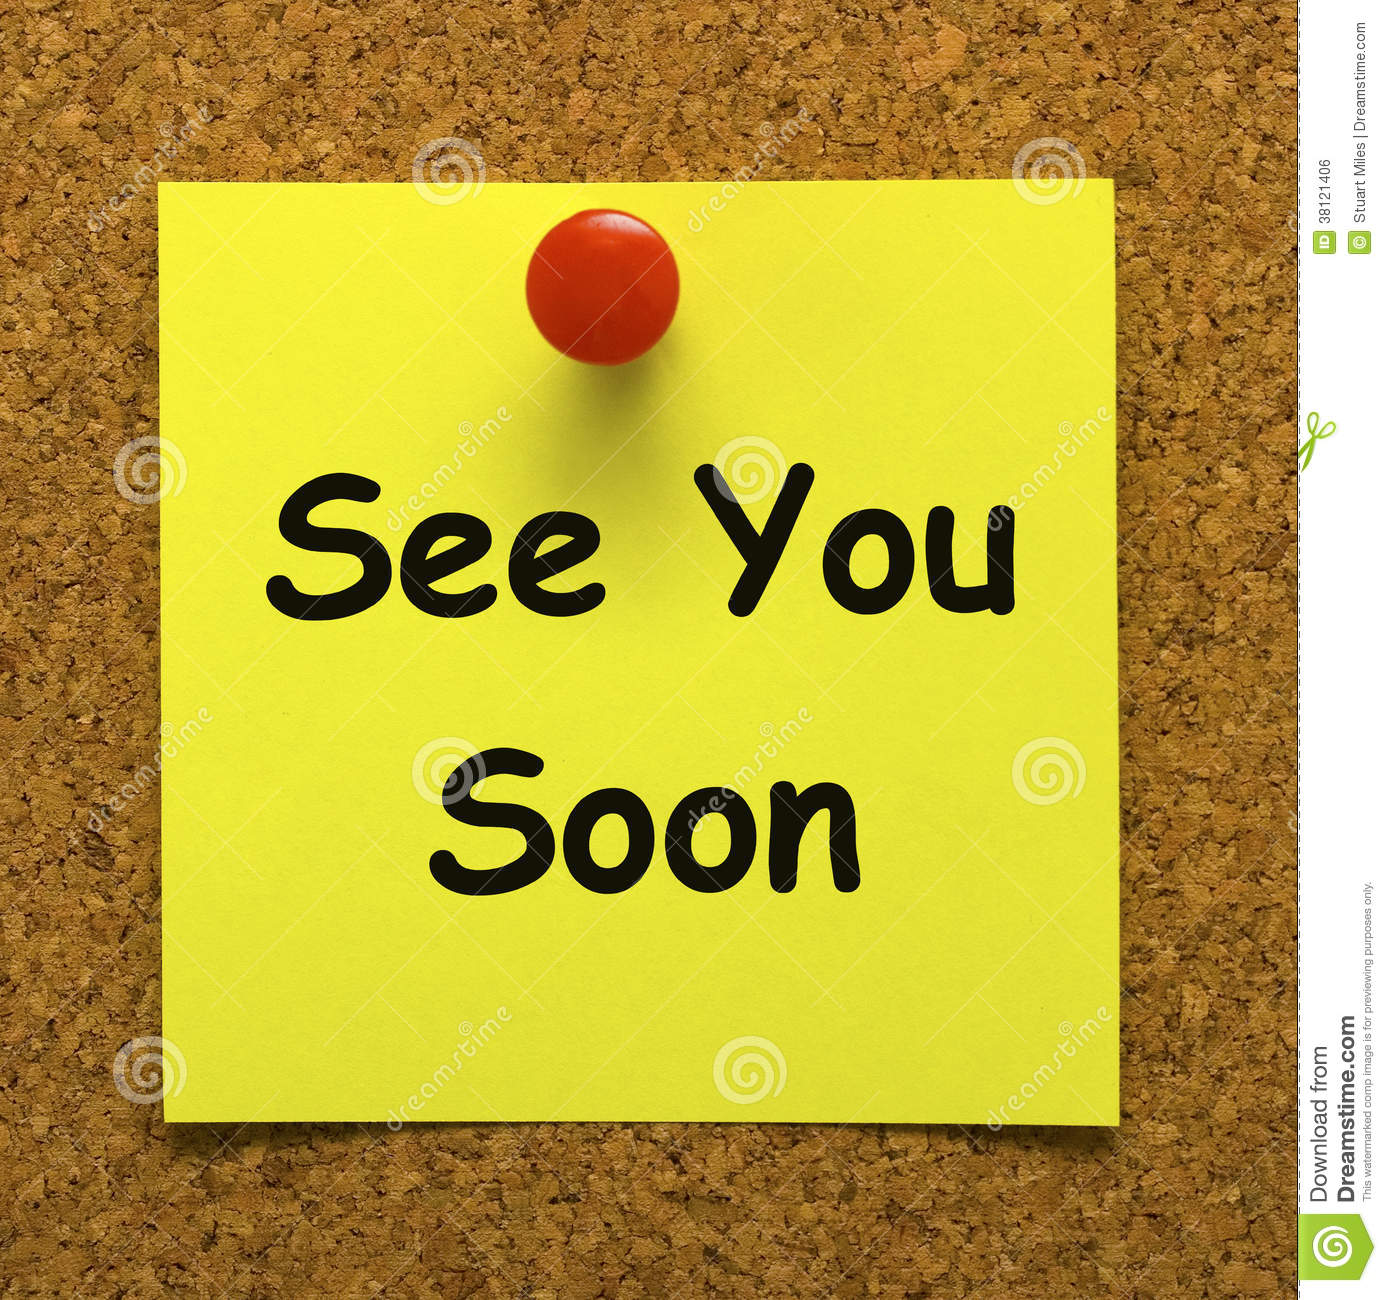 See You Soon Means Goodbye Or Farewell Stock Illustration